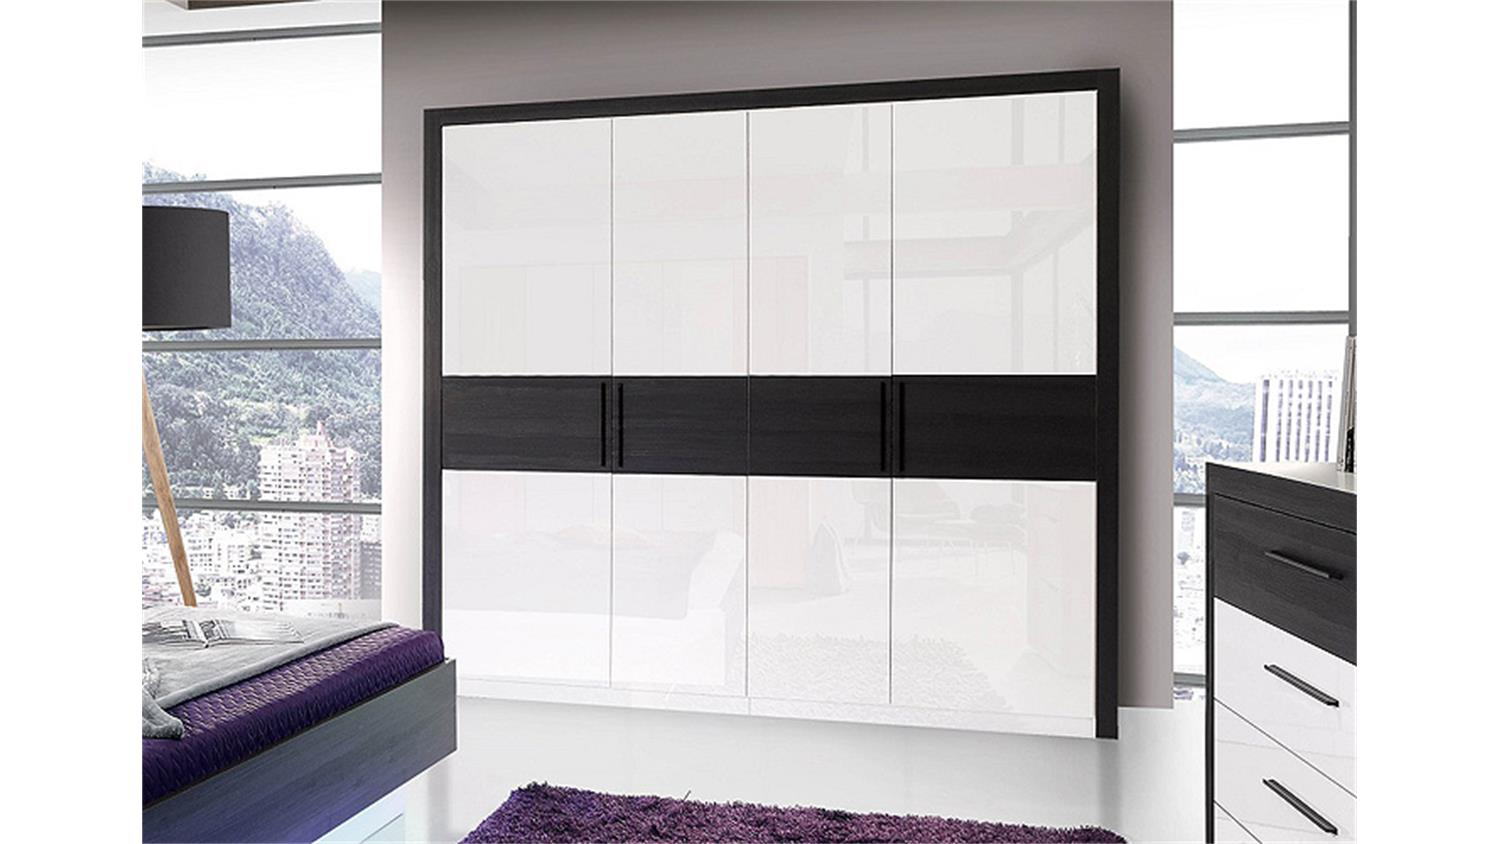 kleiderschrank wei schwarz hochglanz dekoration. Black Bedroom Furniture Sets. Home Design Ideas